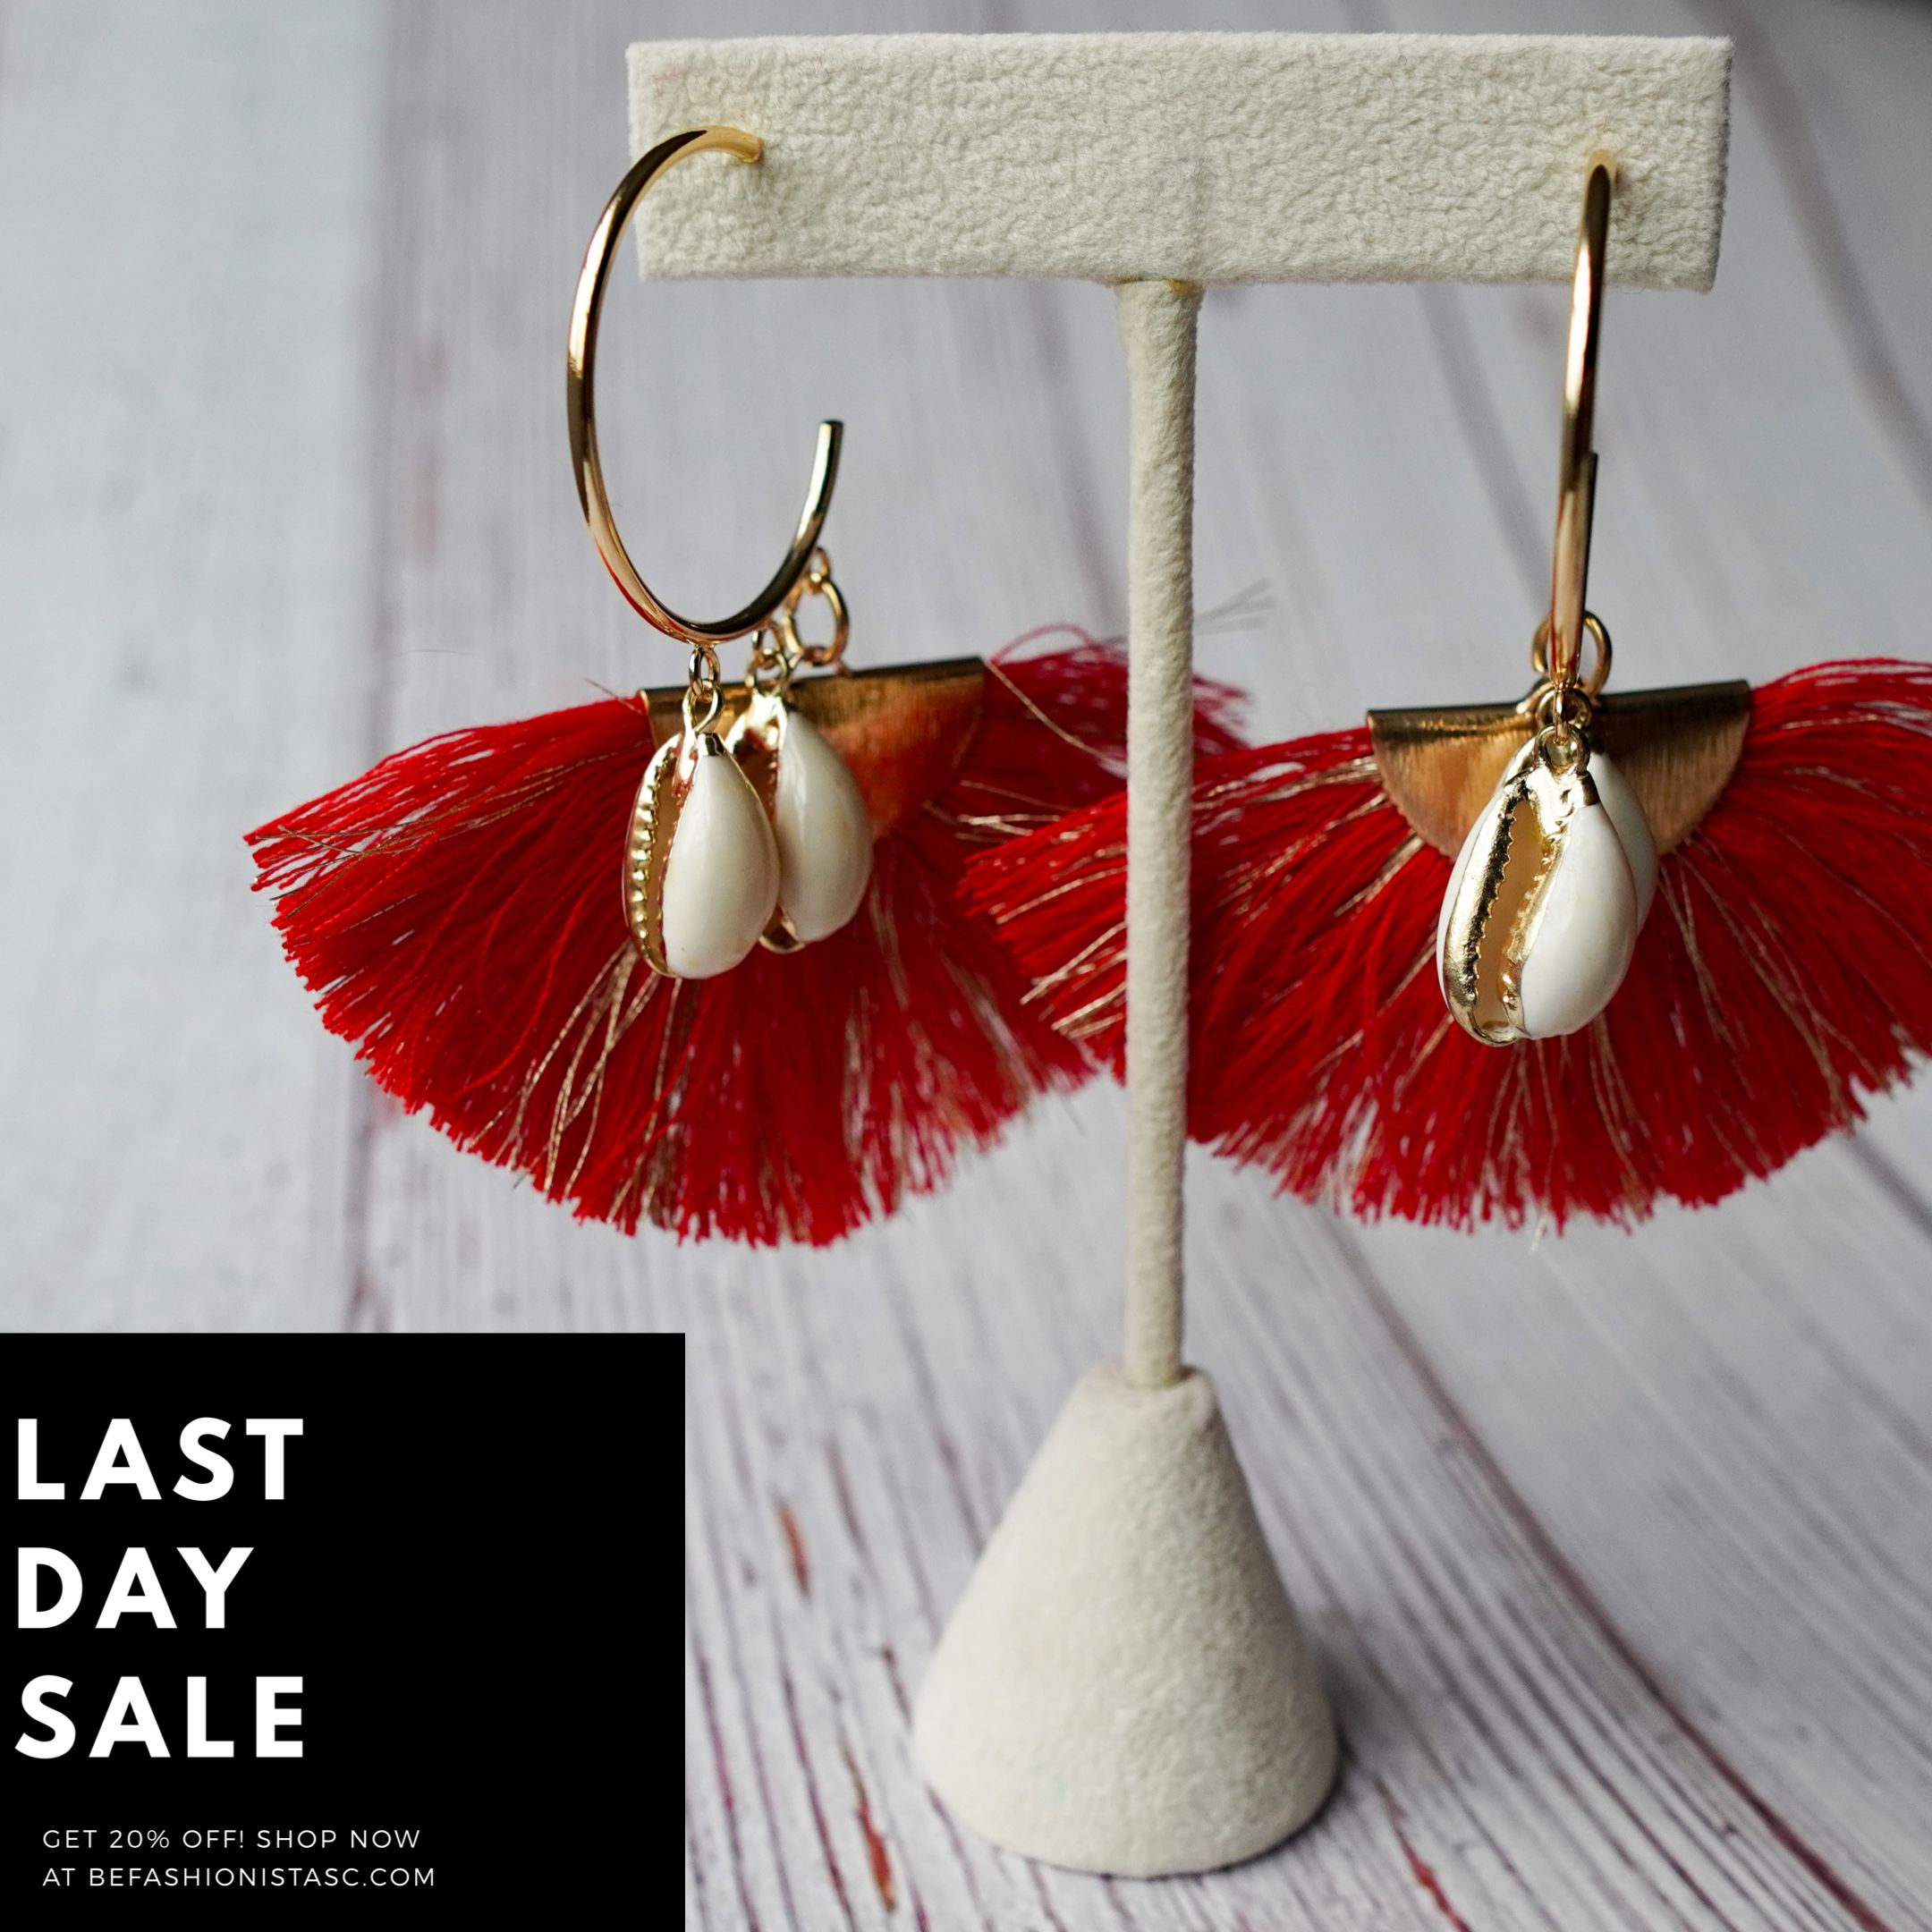 #handmade #handmadejewelry #accessories #earrings #memorialday  #sale  #shoplocal